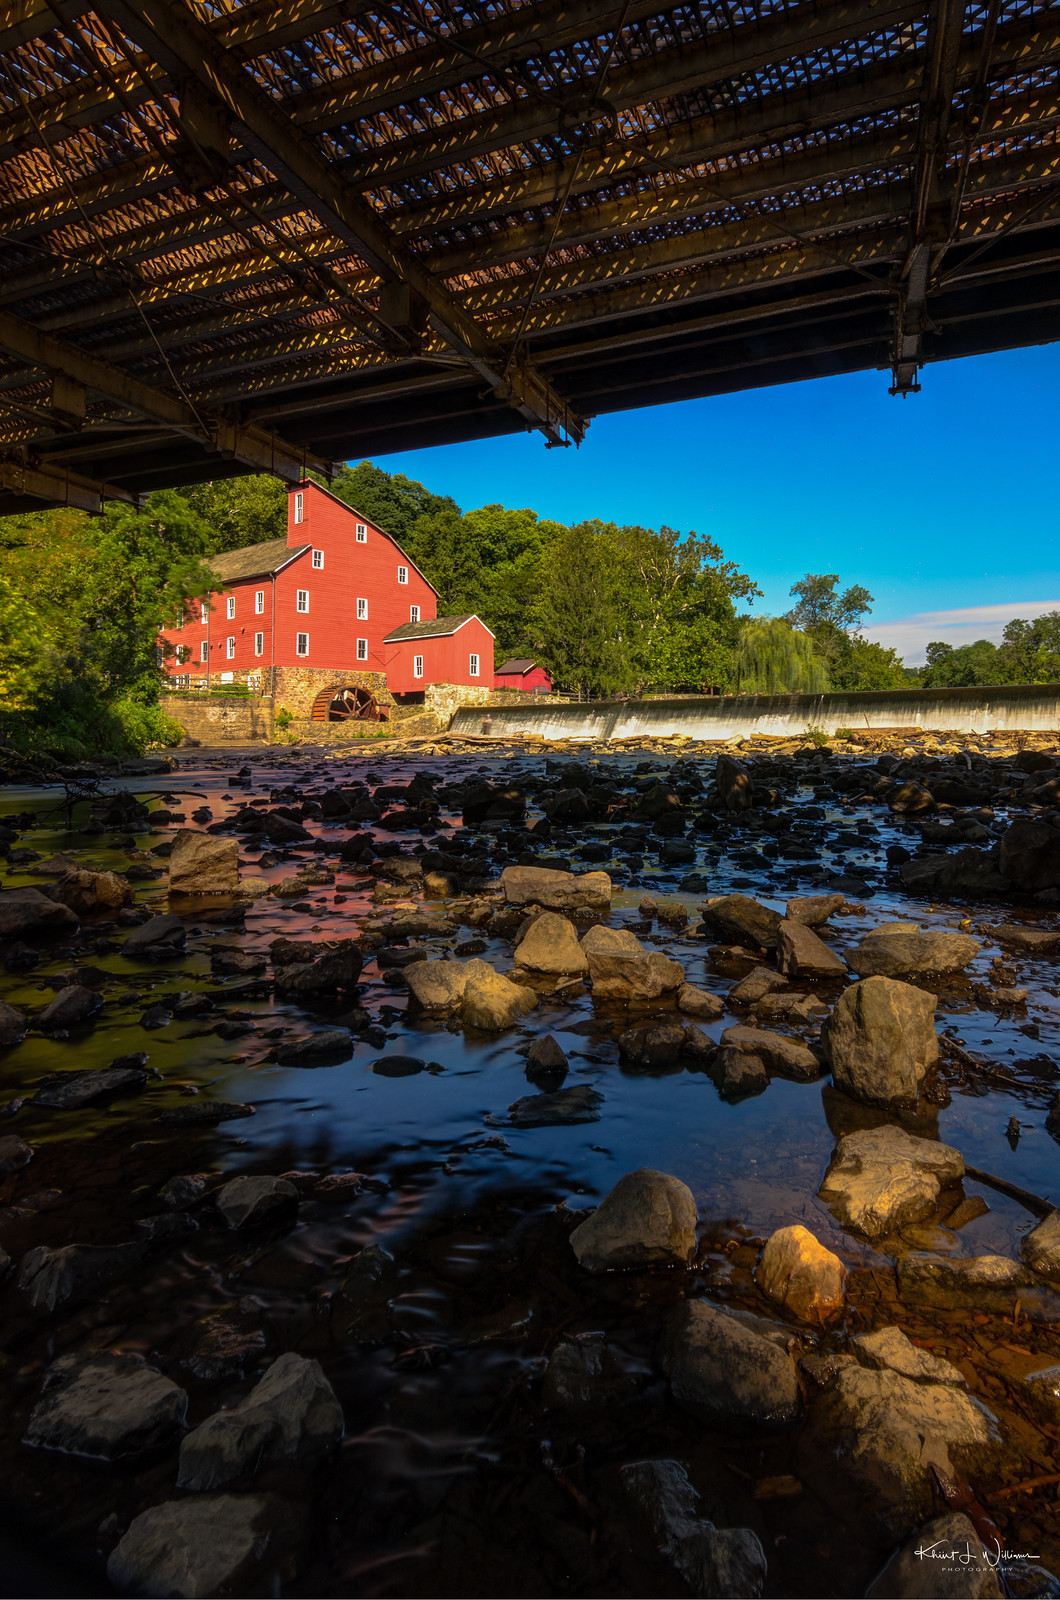 The Red Mill Museum, Clinton, New Jersey 28905913062 367d6519c7 h